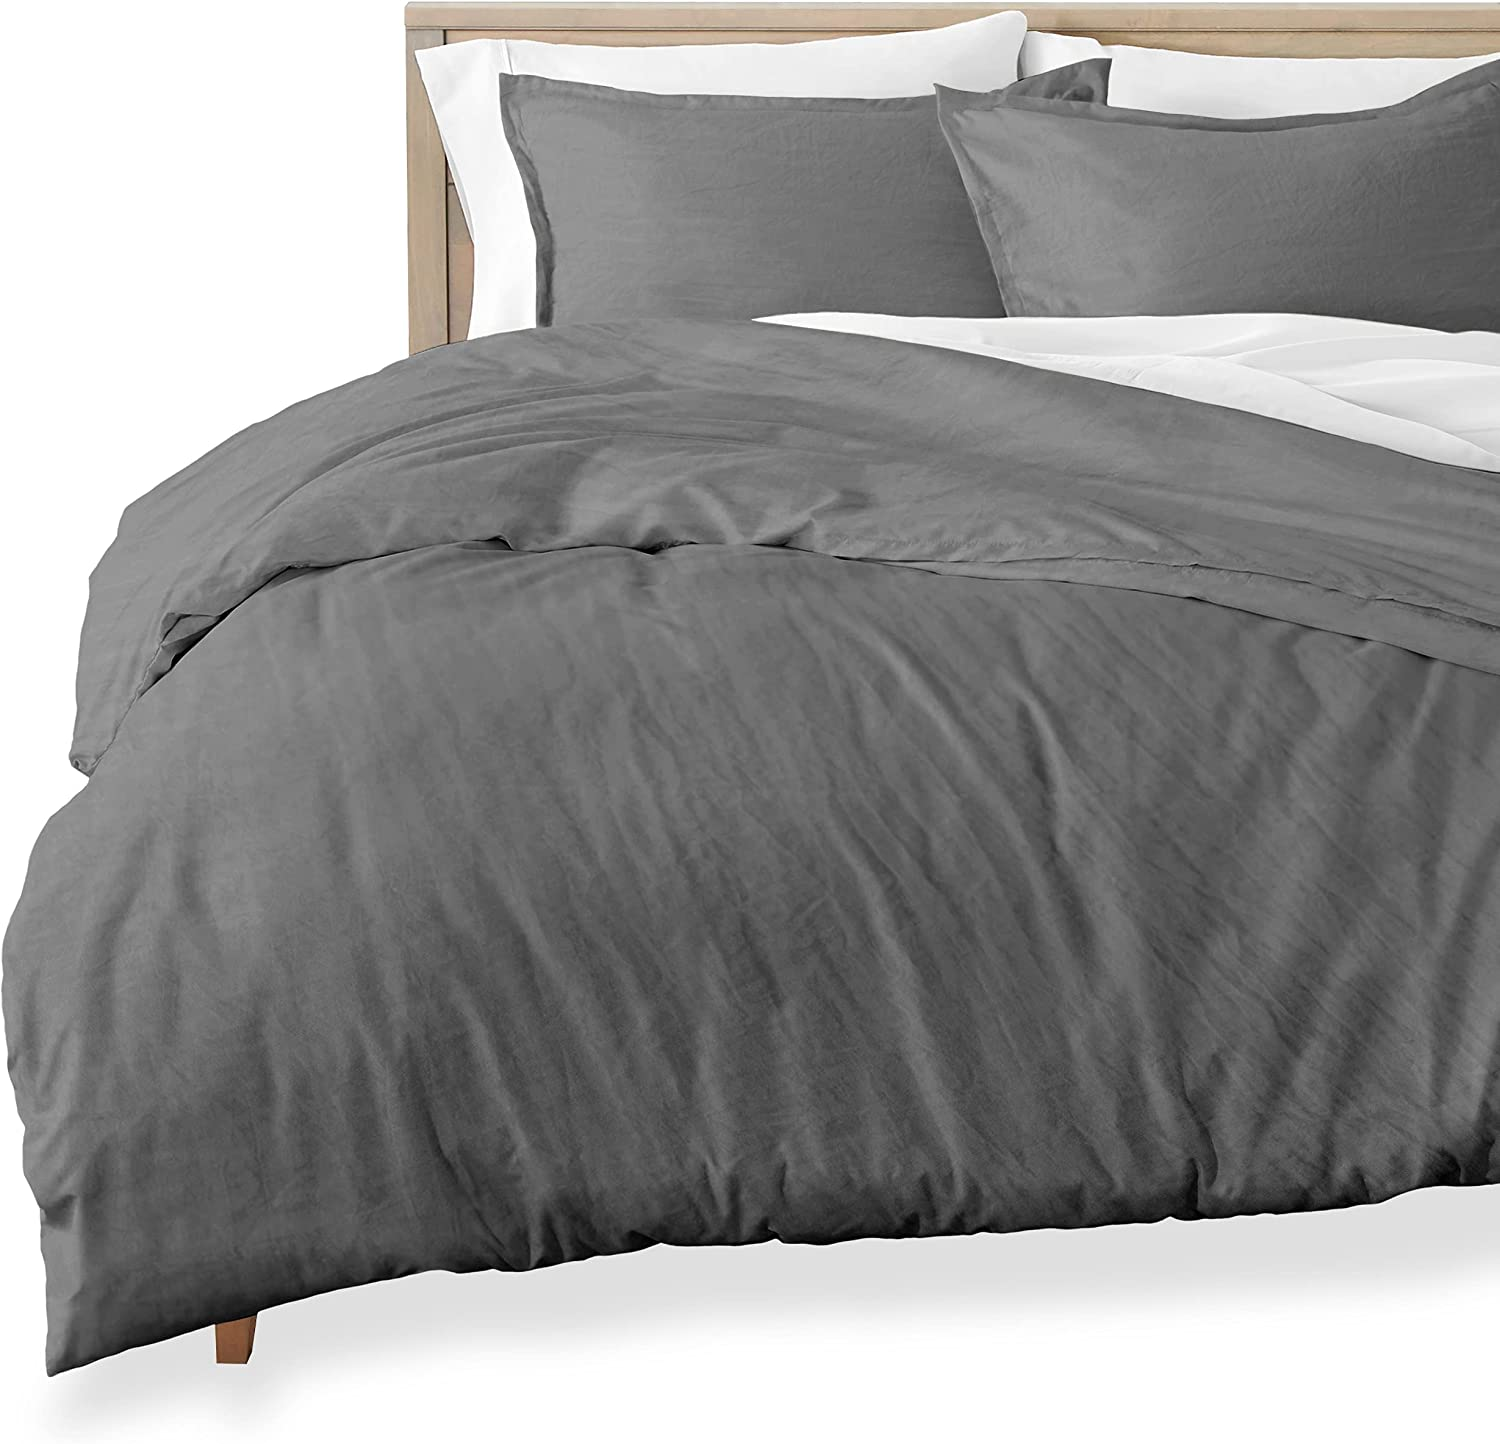 Bare Home Sandwashed Duvet Cover Ranking TOP18 Oversized King Our shop OFFers the best service 1 Size - Premium